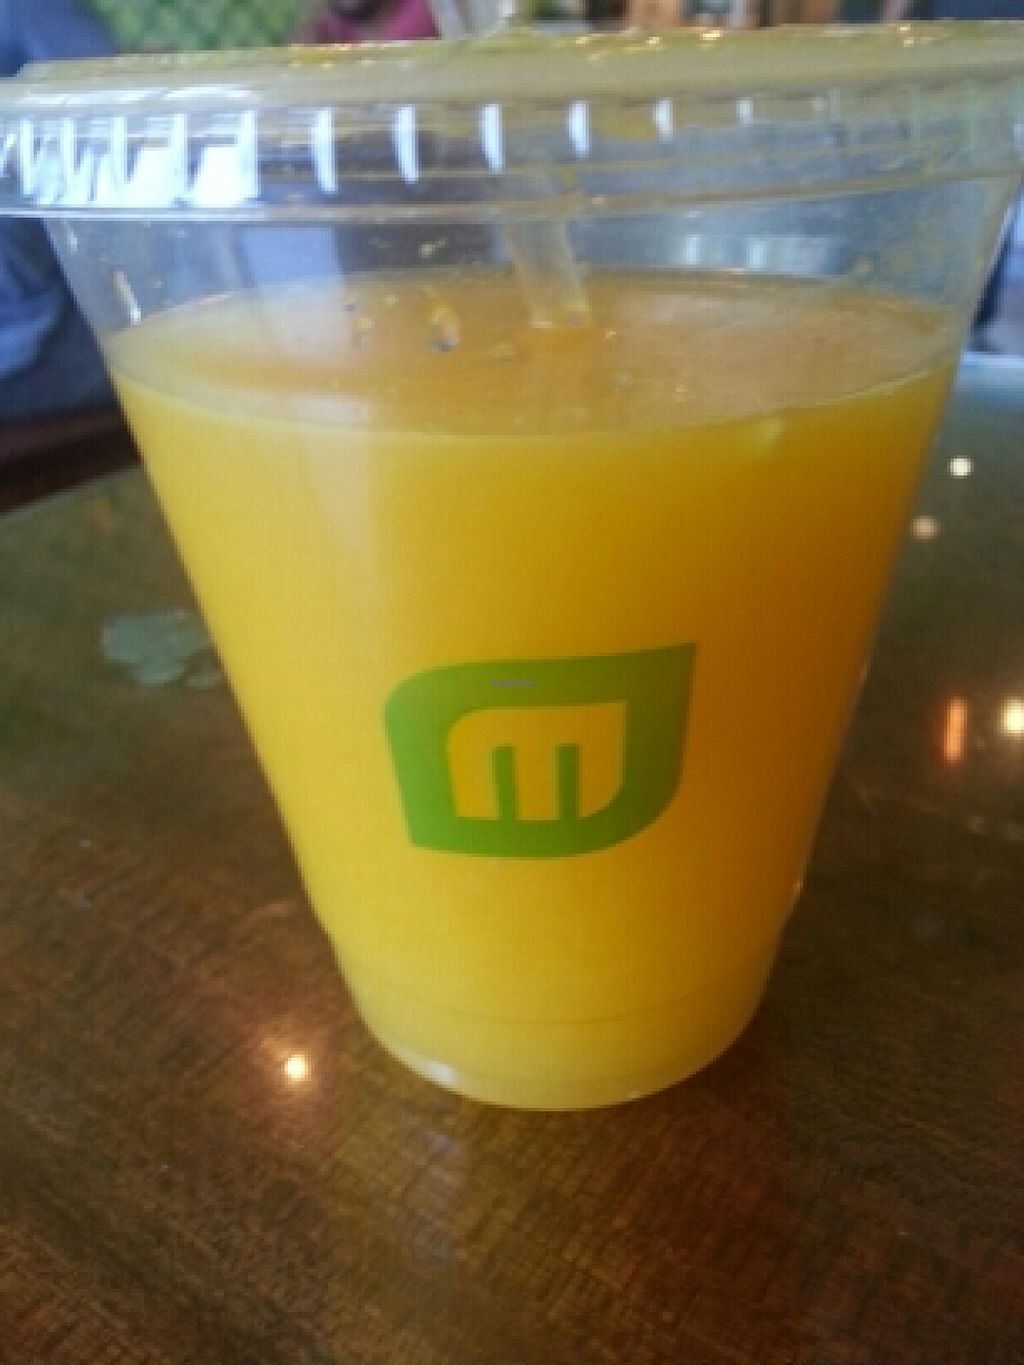 """Photo of CLOSED: Maoz Vegetarian  by <a href=""""/members/profile/eric"""">eric</a> <br/>fresh oj <br/> April 4, 2016  - <a href='/contact/abuse/image/31168/142686'>Report</a>"""